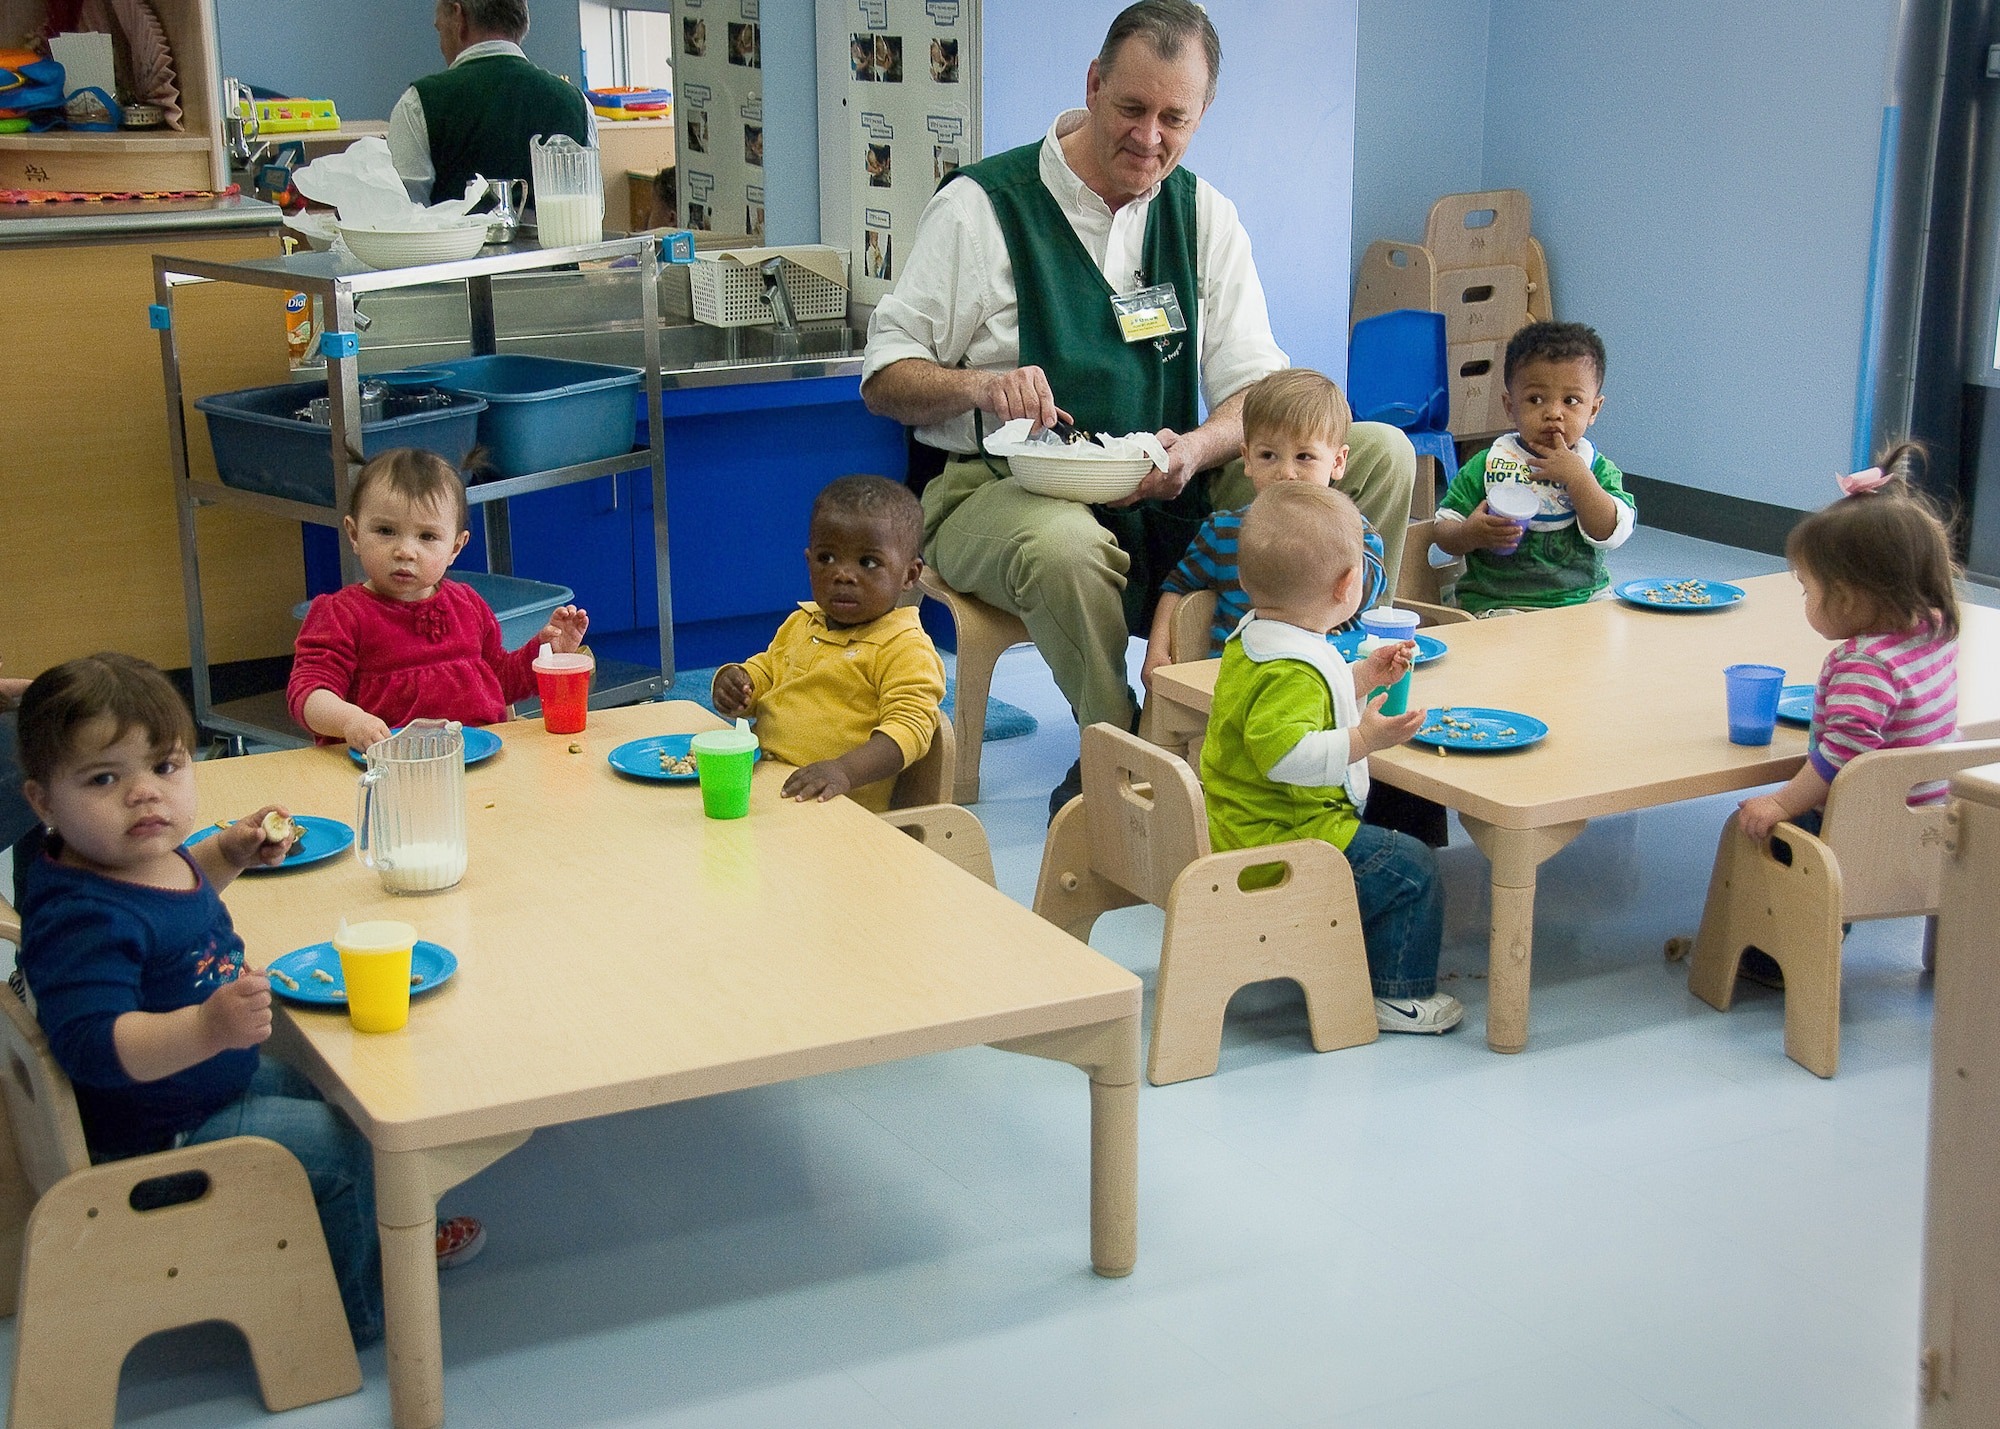 Bob Huber, the pre-toddler room lead at the Yume Child Development Center at Yokota Air Base, Japan, feeds an afternoon snack to children April 12, 2011. Caregivers at Yokota Air Base CDCs work together to continue normal routines with the children by carrying on everyday activities in the aftermath of the earthquake and tsunami. (U.S. Air Force photo/Airman 1st Class Lynsie Nichols)